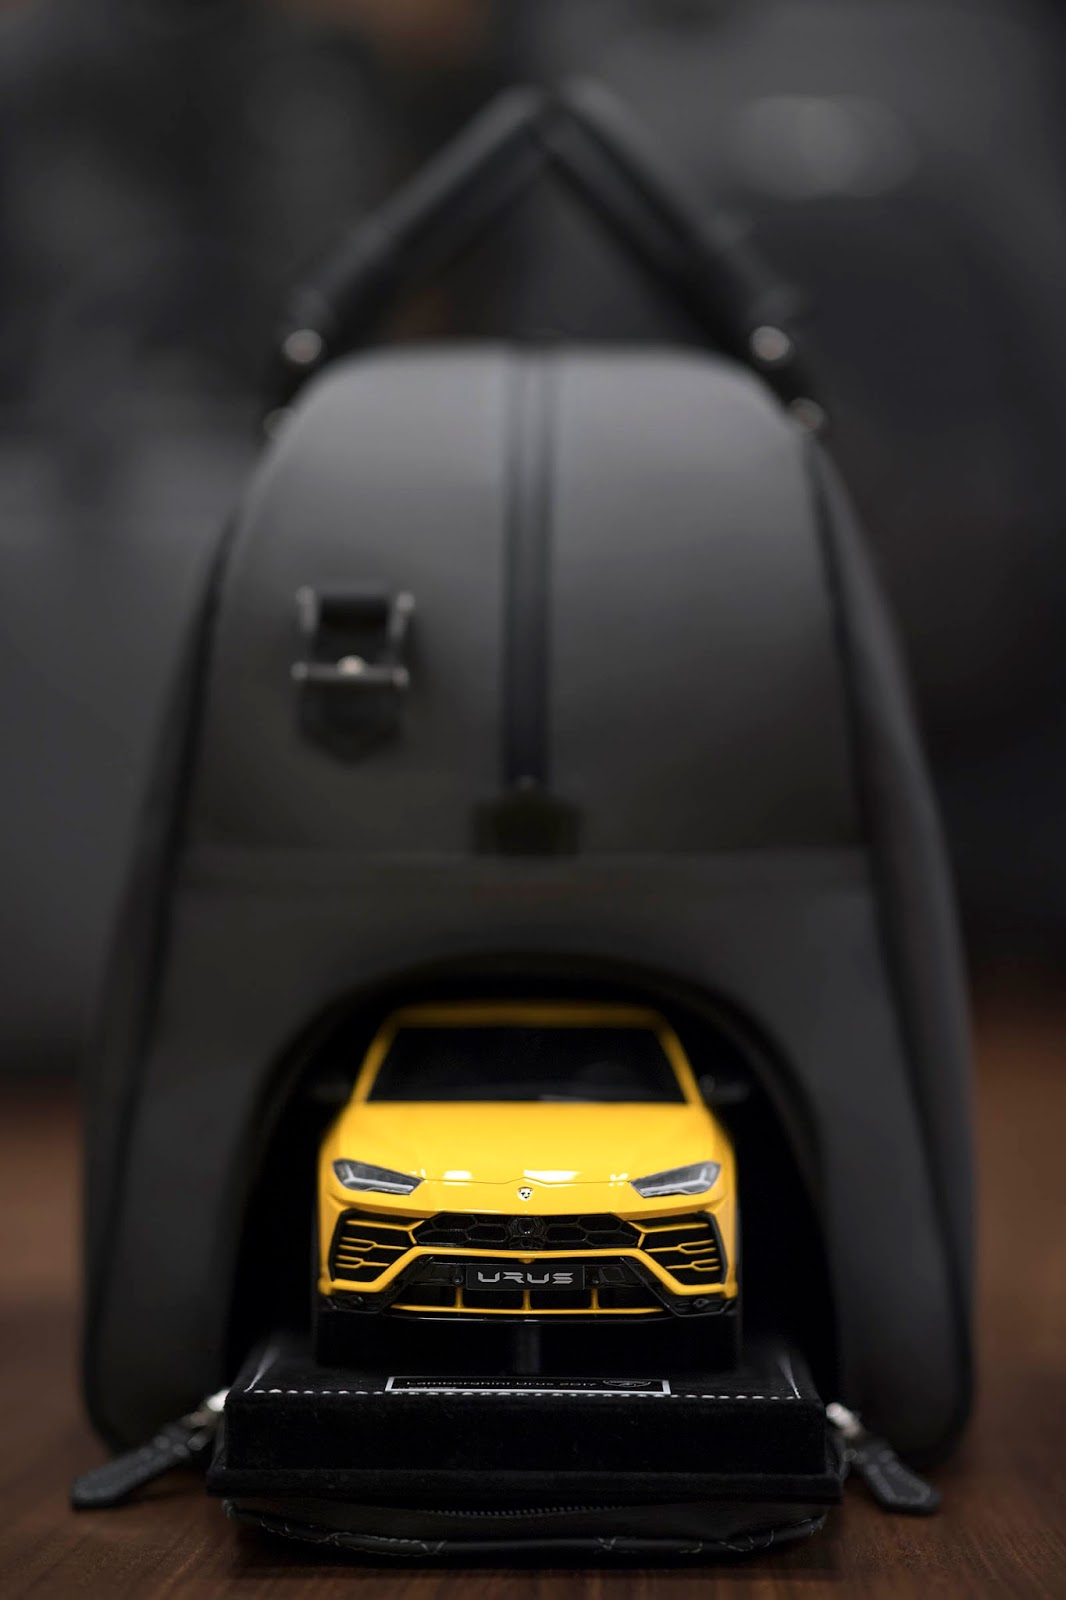 Lamborghini Urus Accessories Collection Might Cost As Much As The Suv Itself Autoevolution